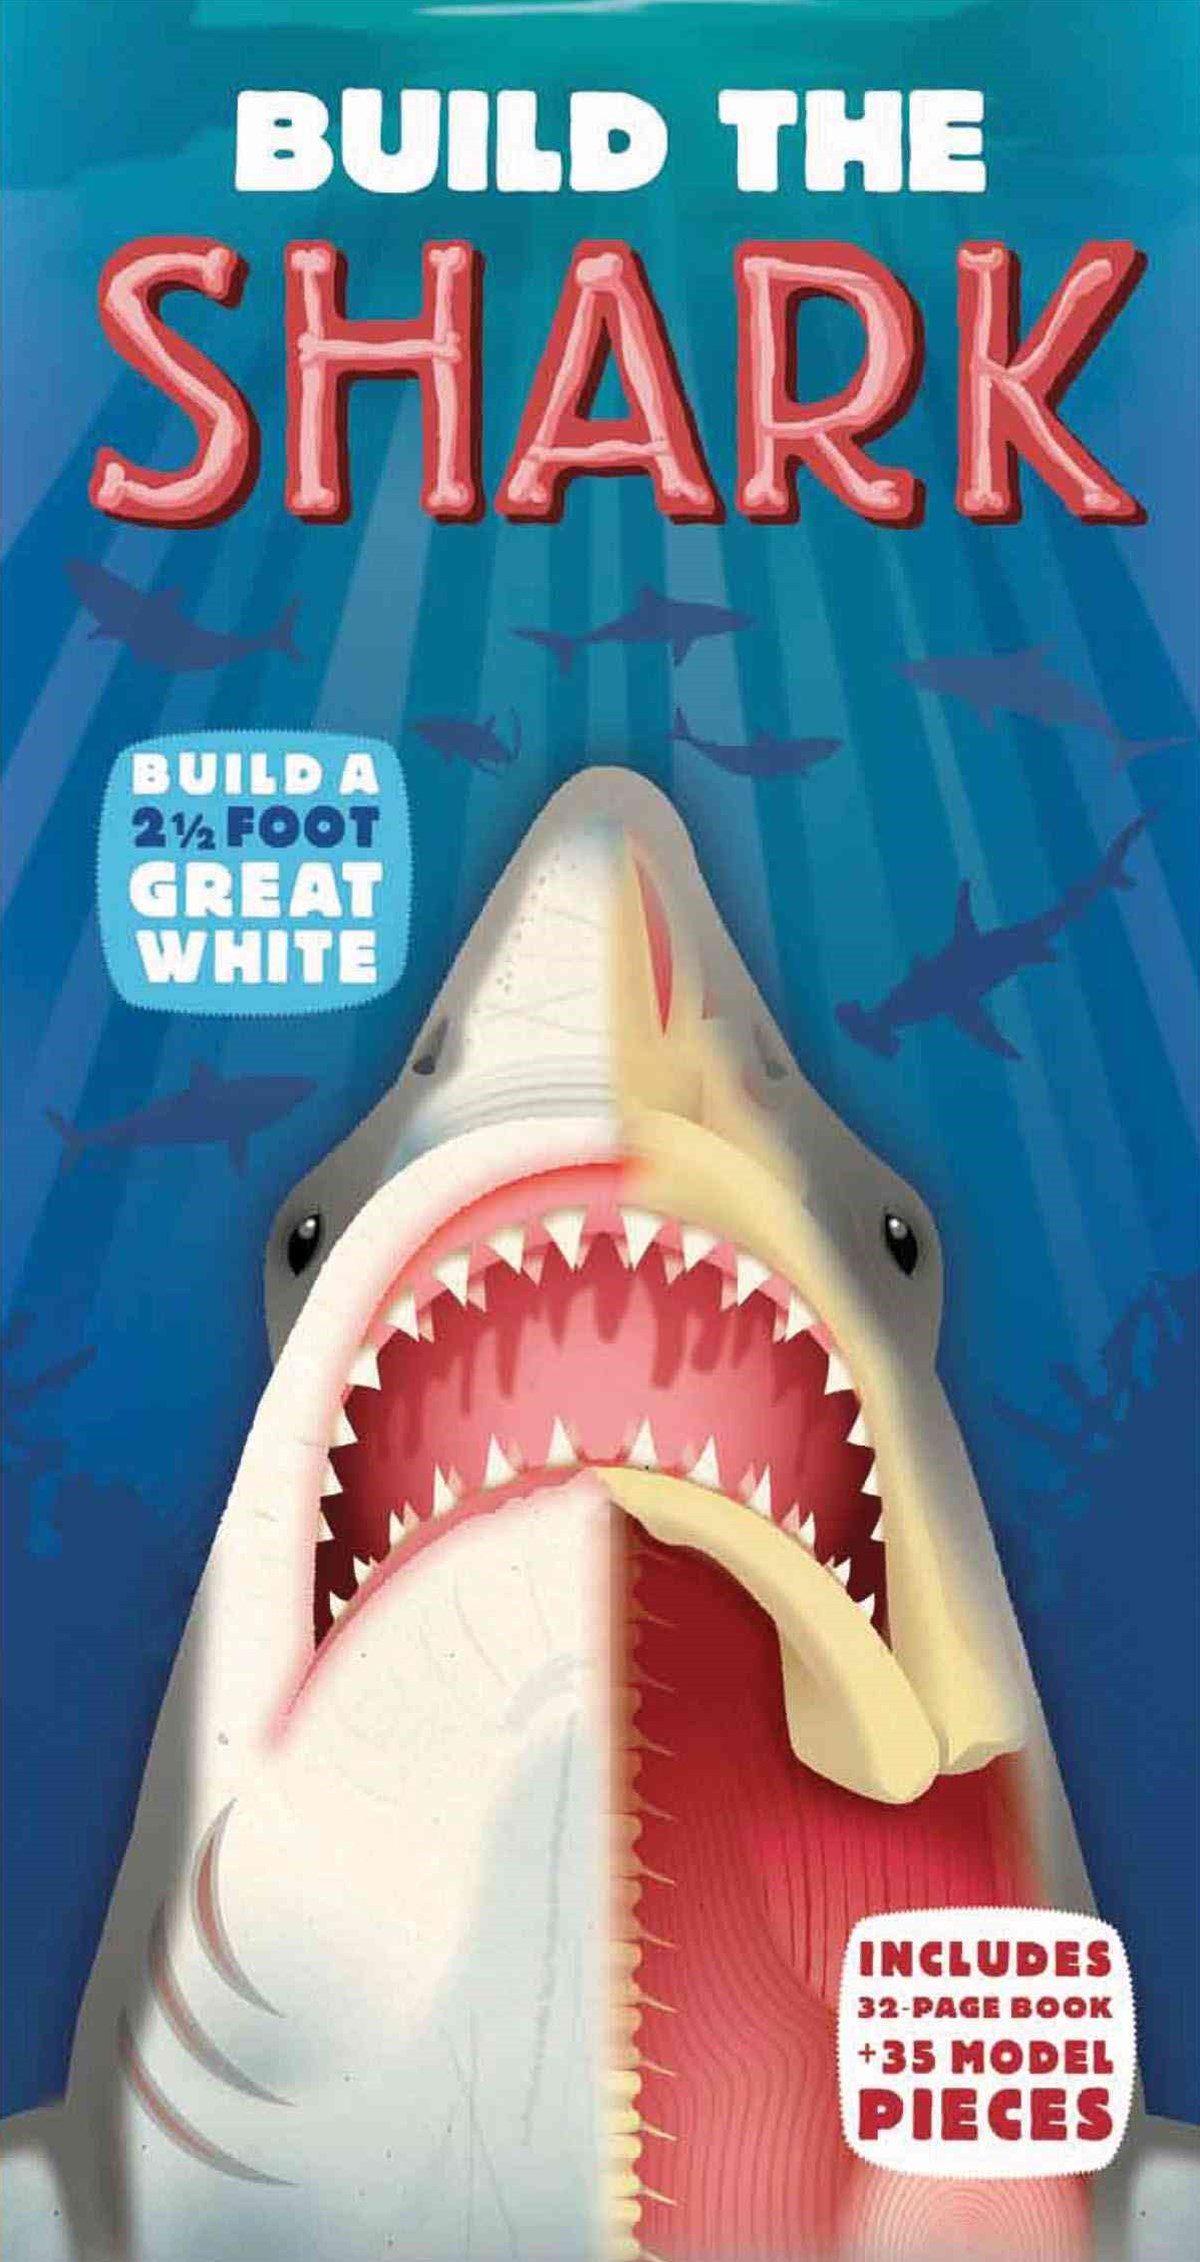 Build the Shark